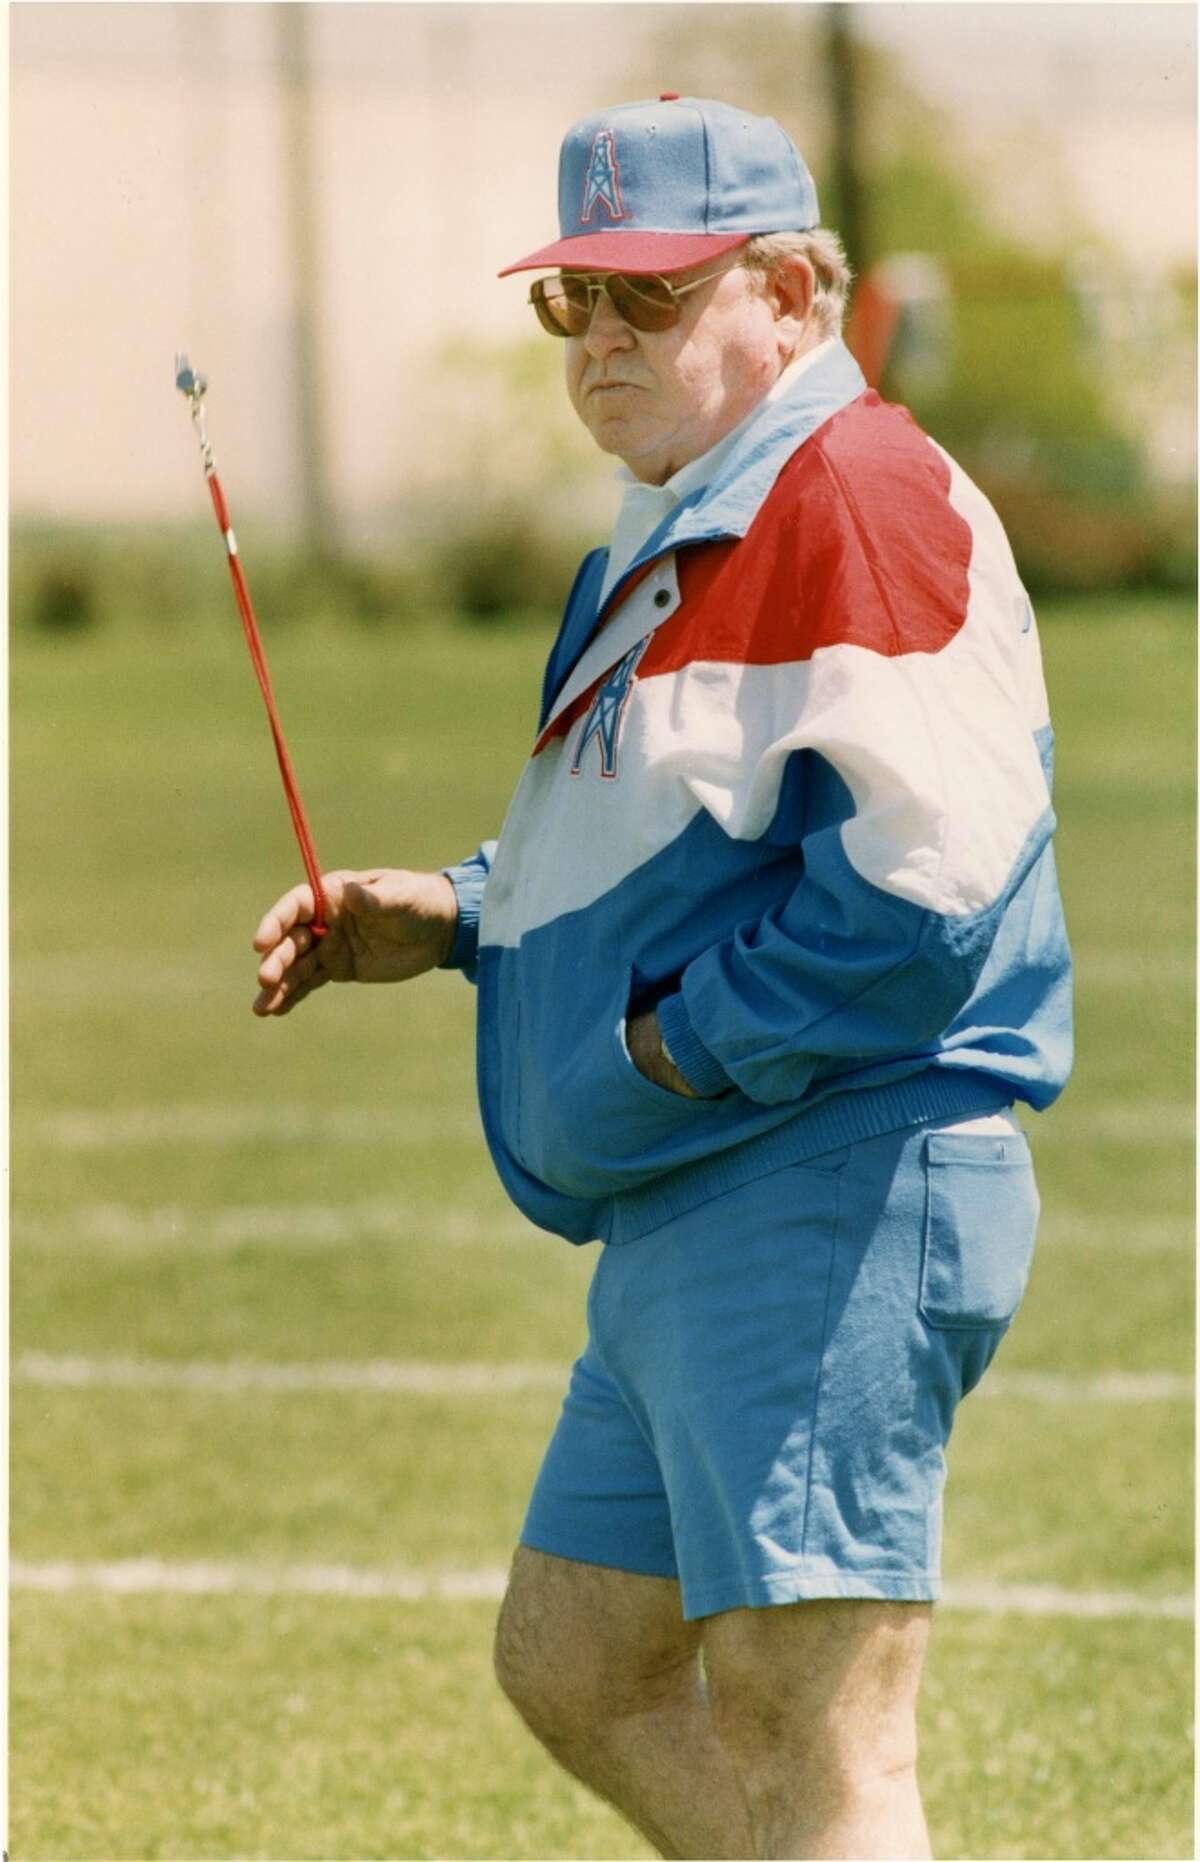 The late Buddy Ryan was a divisive figure during his one season as the Oilers' defensive coordinator in 1993. He didn't hesitate to stoke tensions between his unit and the offense and memorably punched offensive coordinator Kevin Gilbride during the regular-season finale against the Jets. Click through the gallery to see some of Houston's other divisive sports figures through the years.